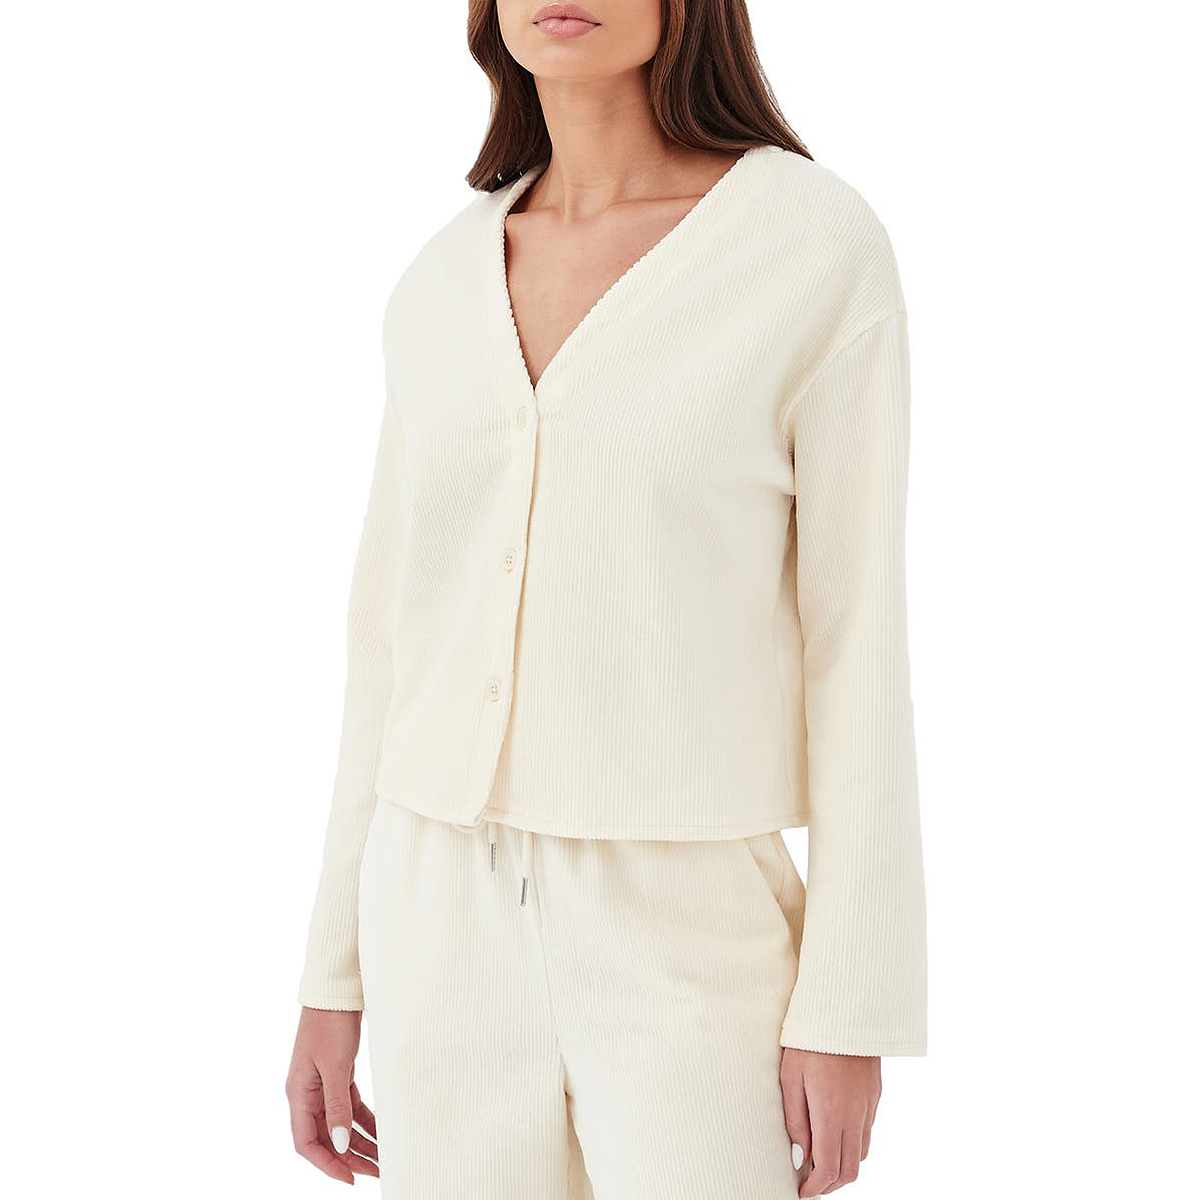 nordstrom-ribbed-clothing-cardigan